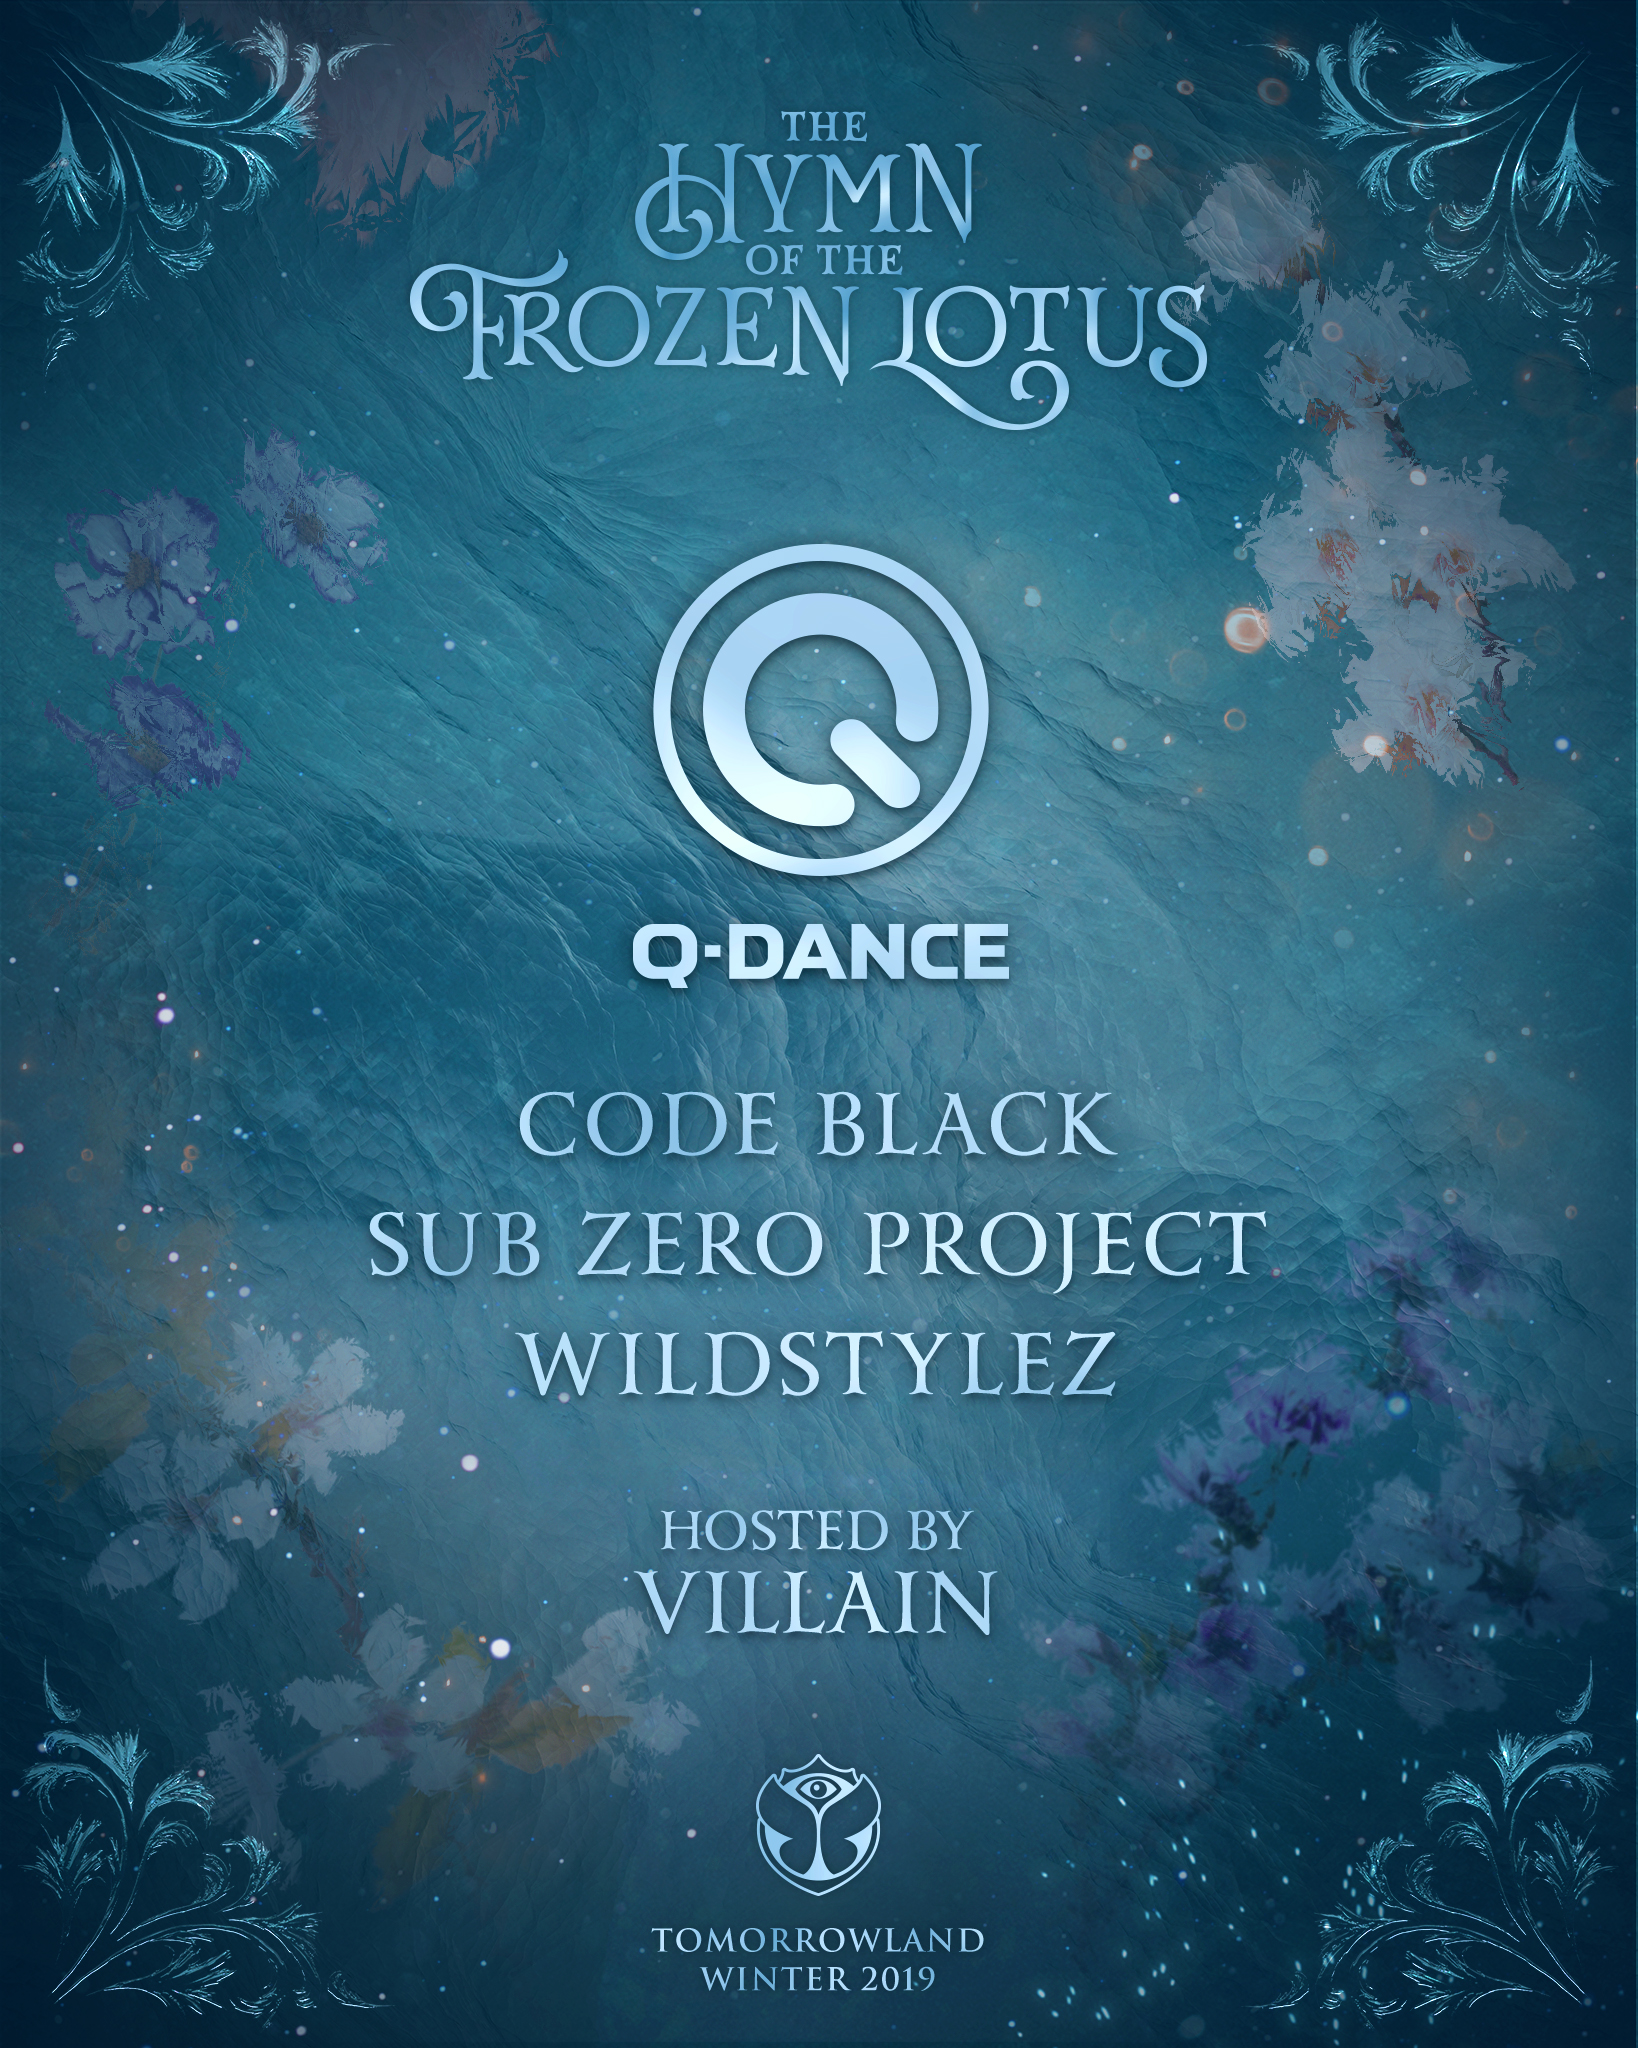 Q-dance | Q-dance at Tomorrowland Winter 2019